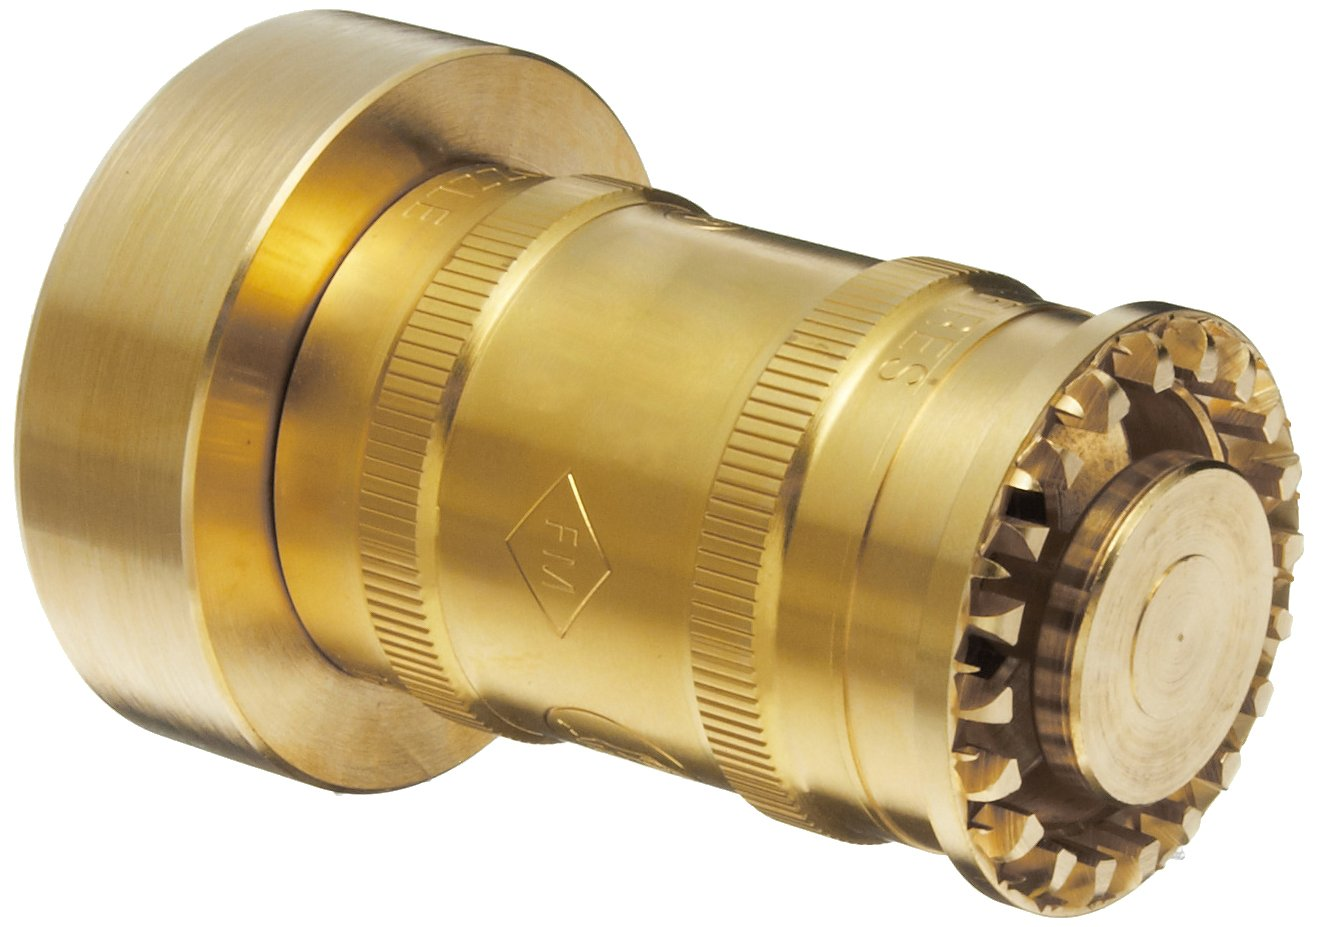 Moon BRN151NST Brass Fire Hose Nozzle, Twist On/Off, 60 gpm, 1-1/2 NST 1-1/2 NST Moon American